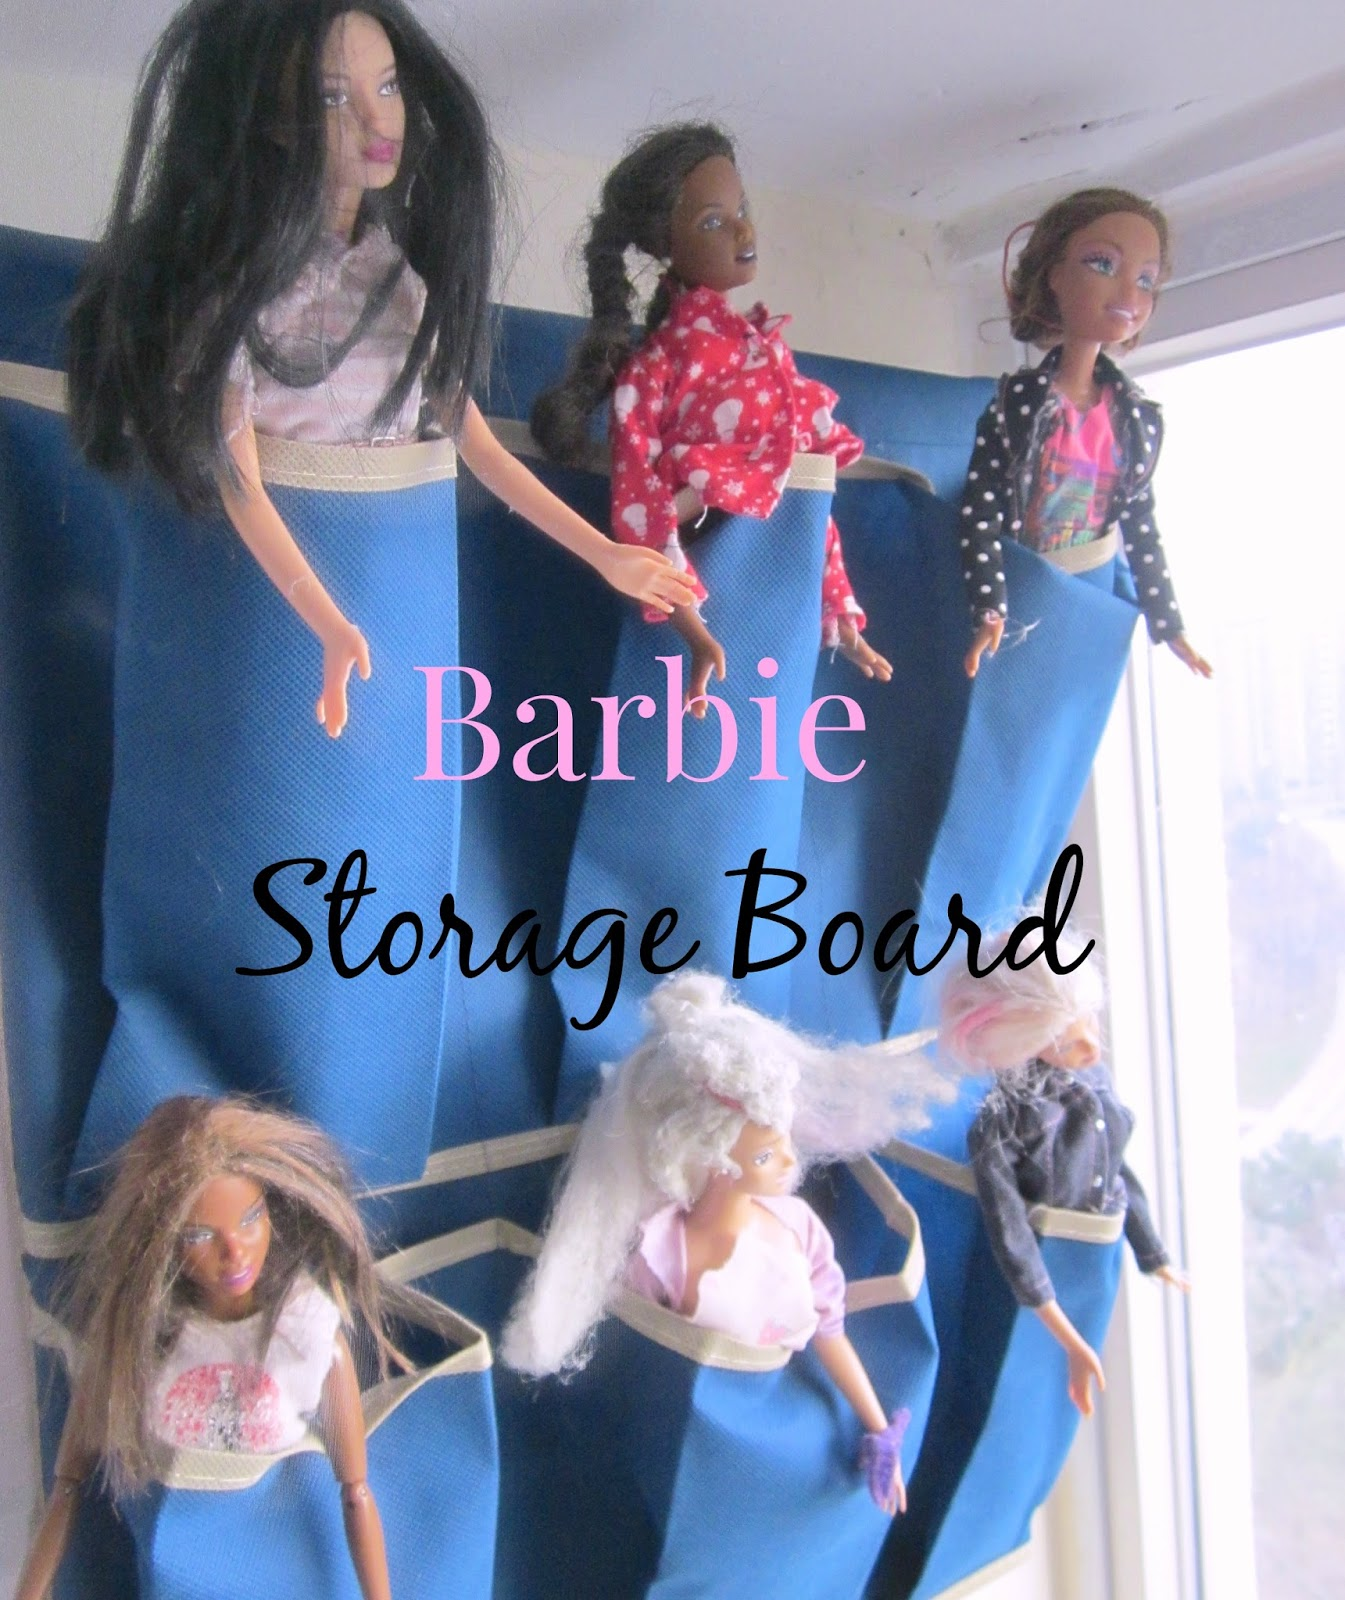 barbie storage board